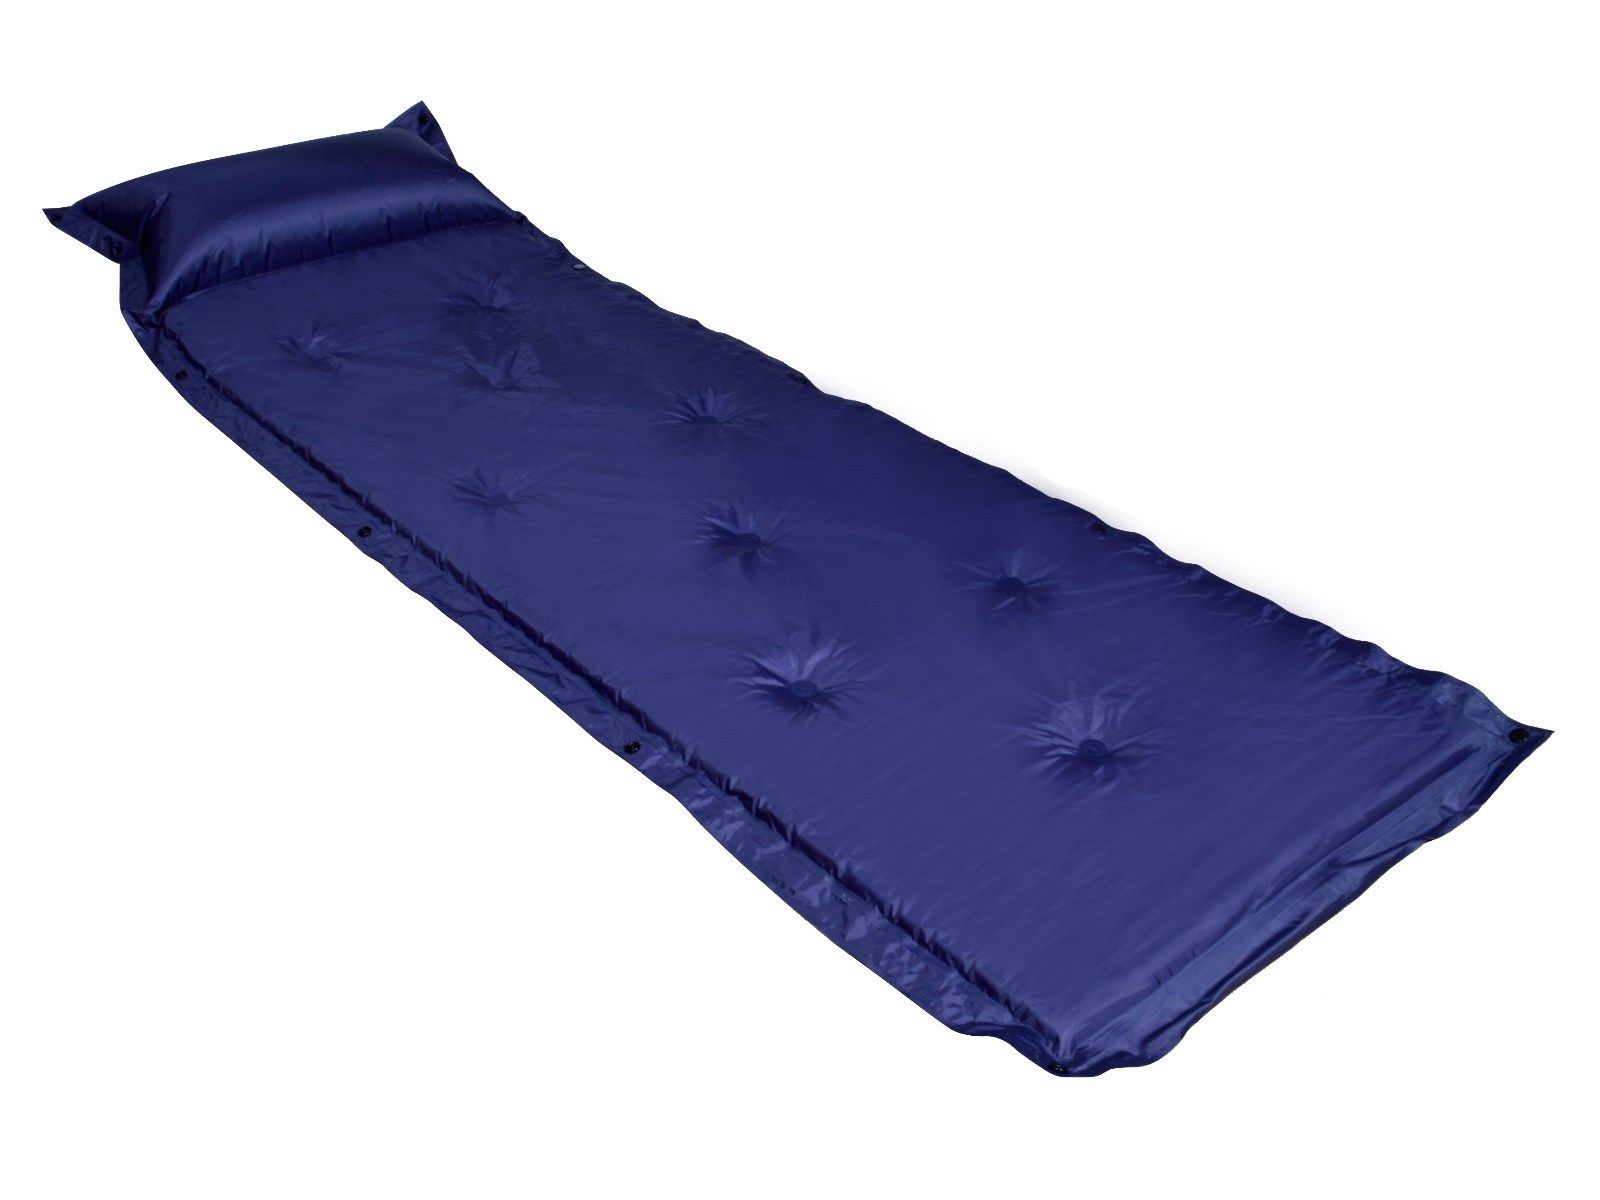 Outdoor Self Inflating Blue Pad Picnic Hiking Camping Bed